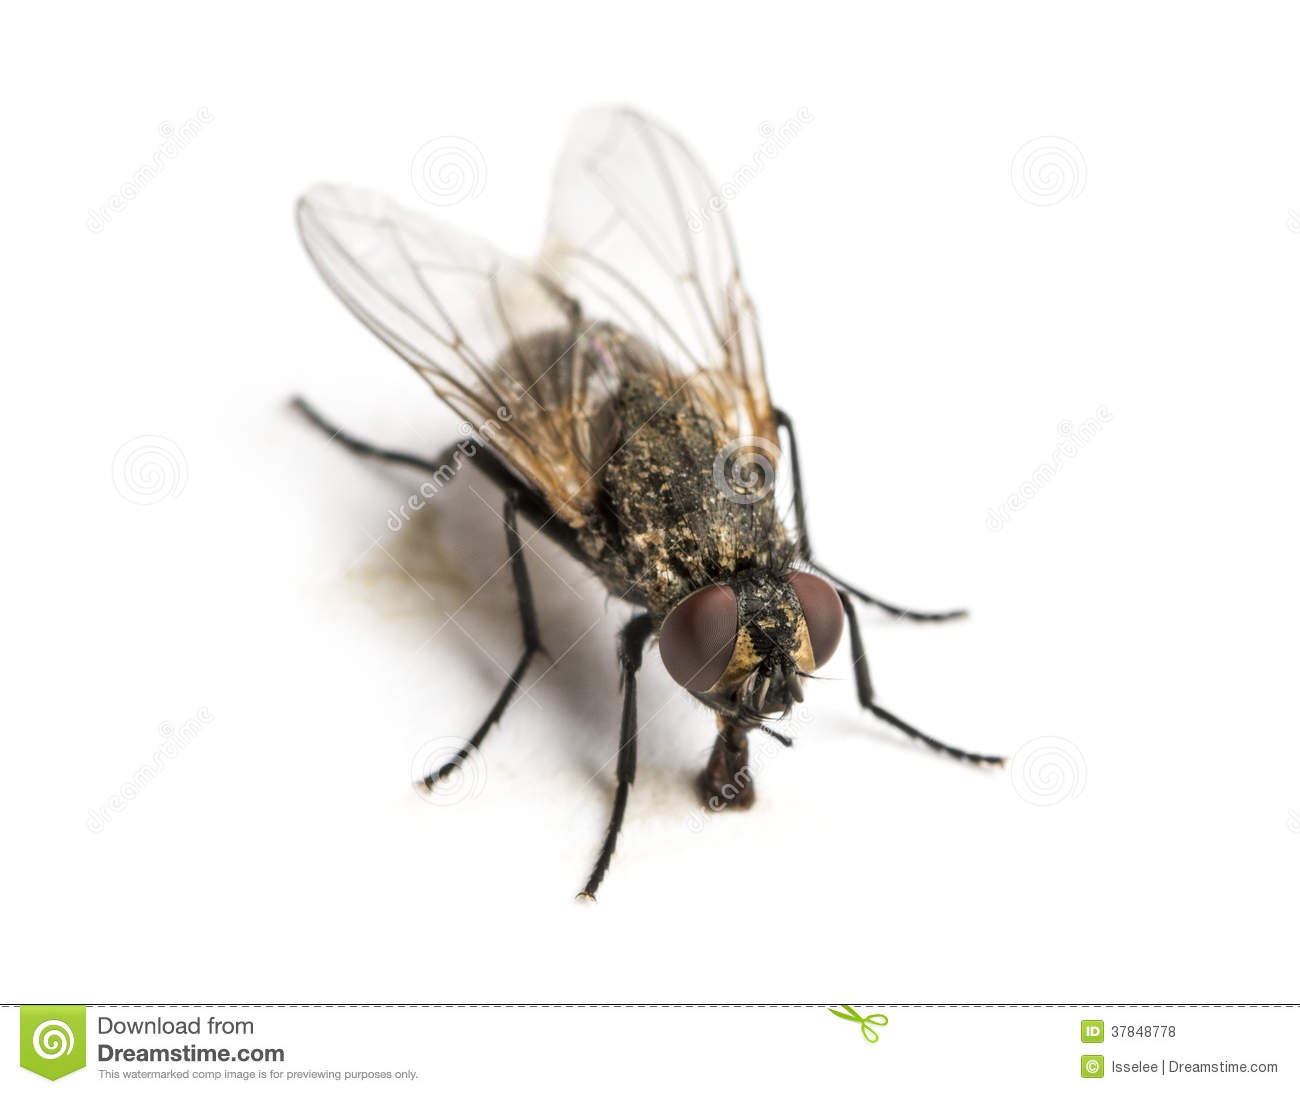 House Fly, Musca domestica